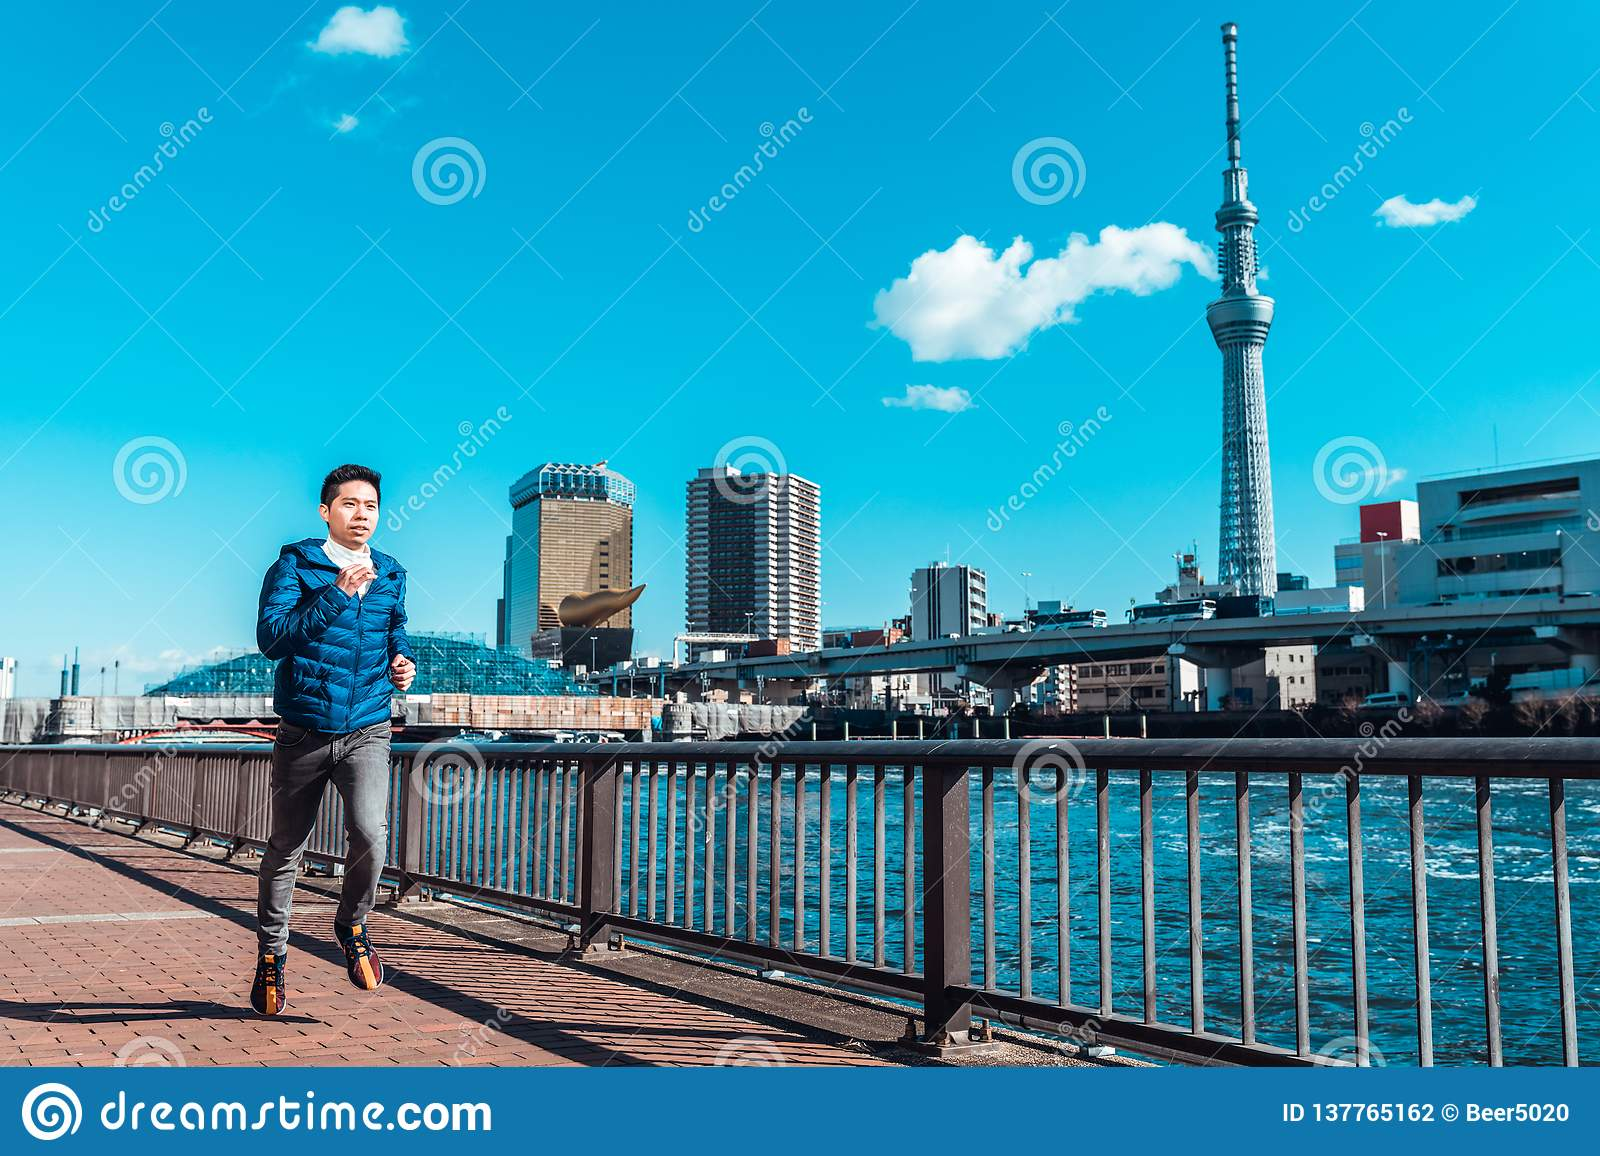 Man running by Sumida river, Tokyo Skytree in background. Sport training, healthy lifestyle, or Tokyo 2020 summer Olympic concept